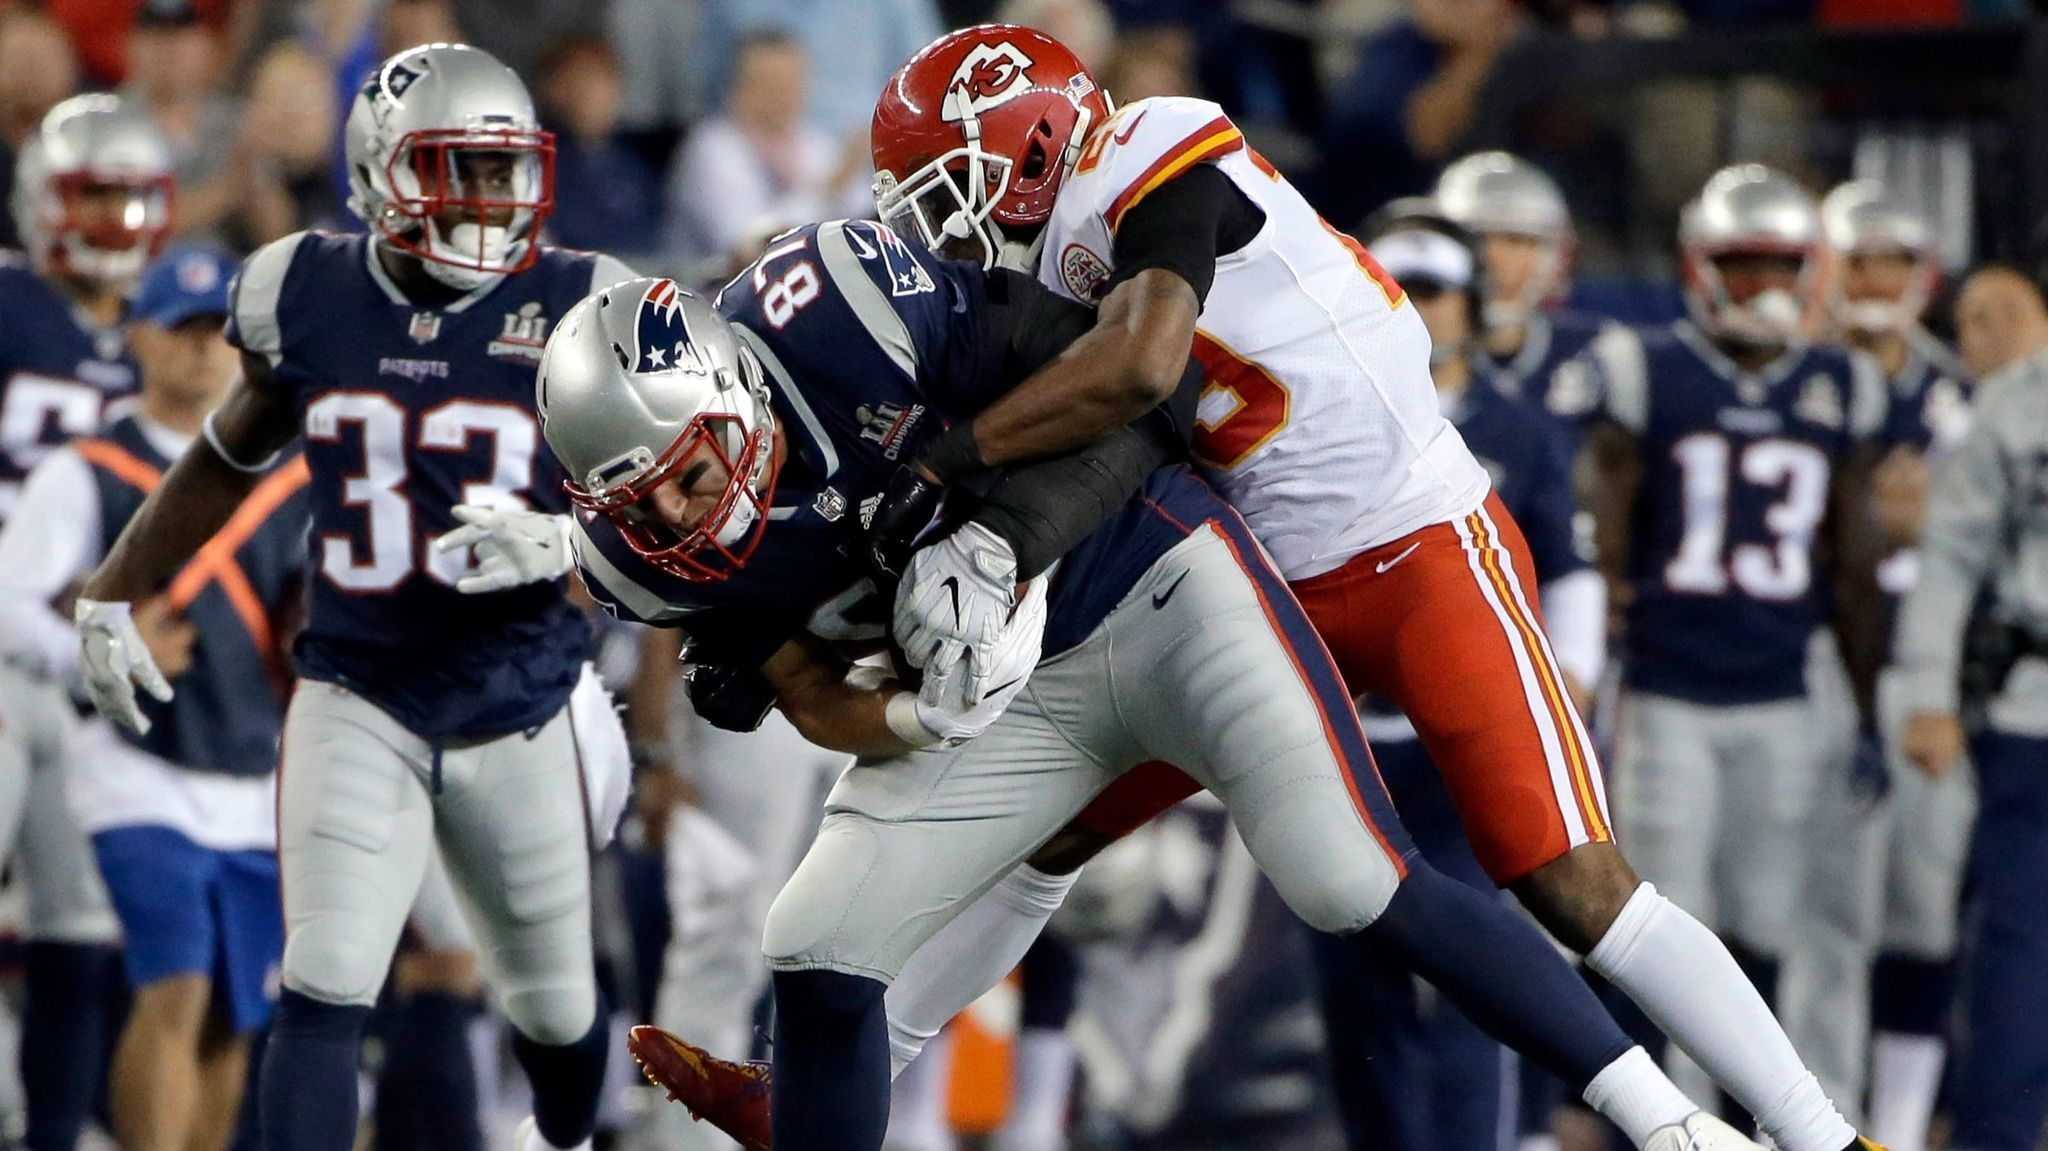 Eric Berry leaves game with Achilles injury but no definitive